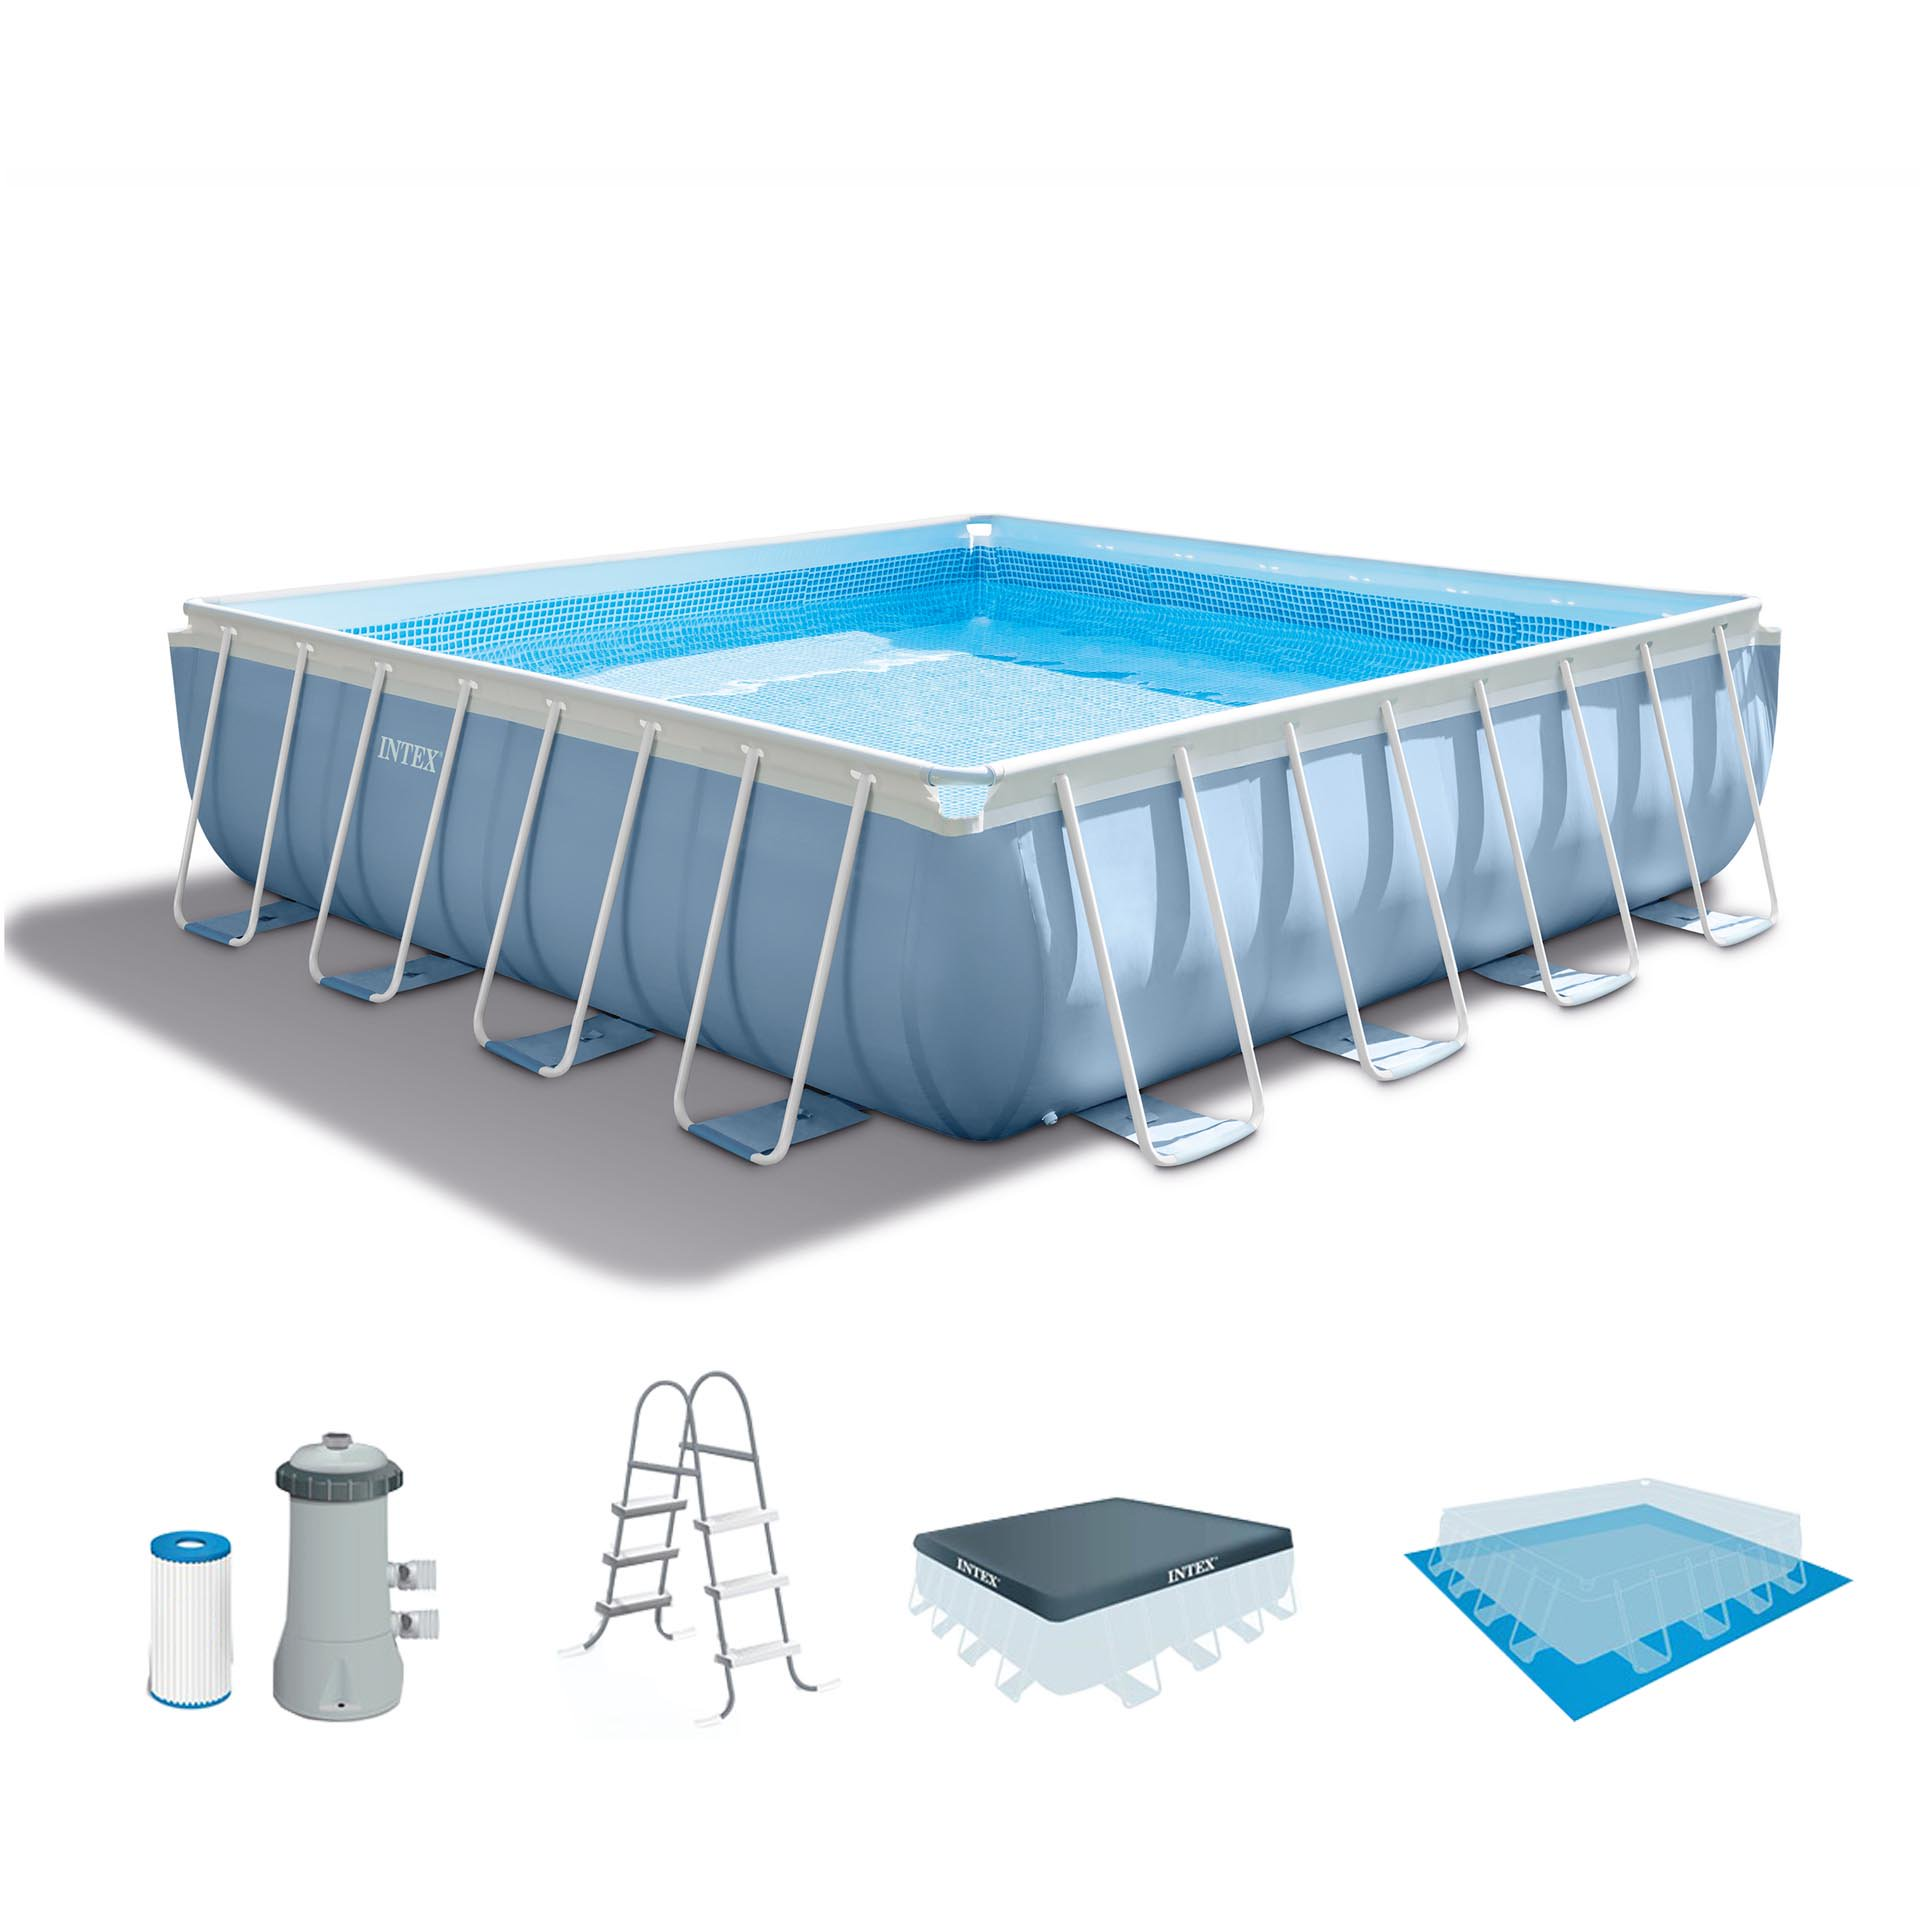 Intex 14' Above Ground Swimming Pool Set with Ladder, 1000 GPH Pump and Filter by Intex